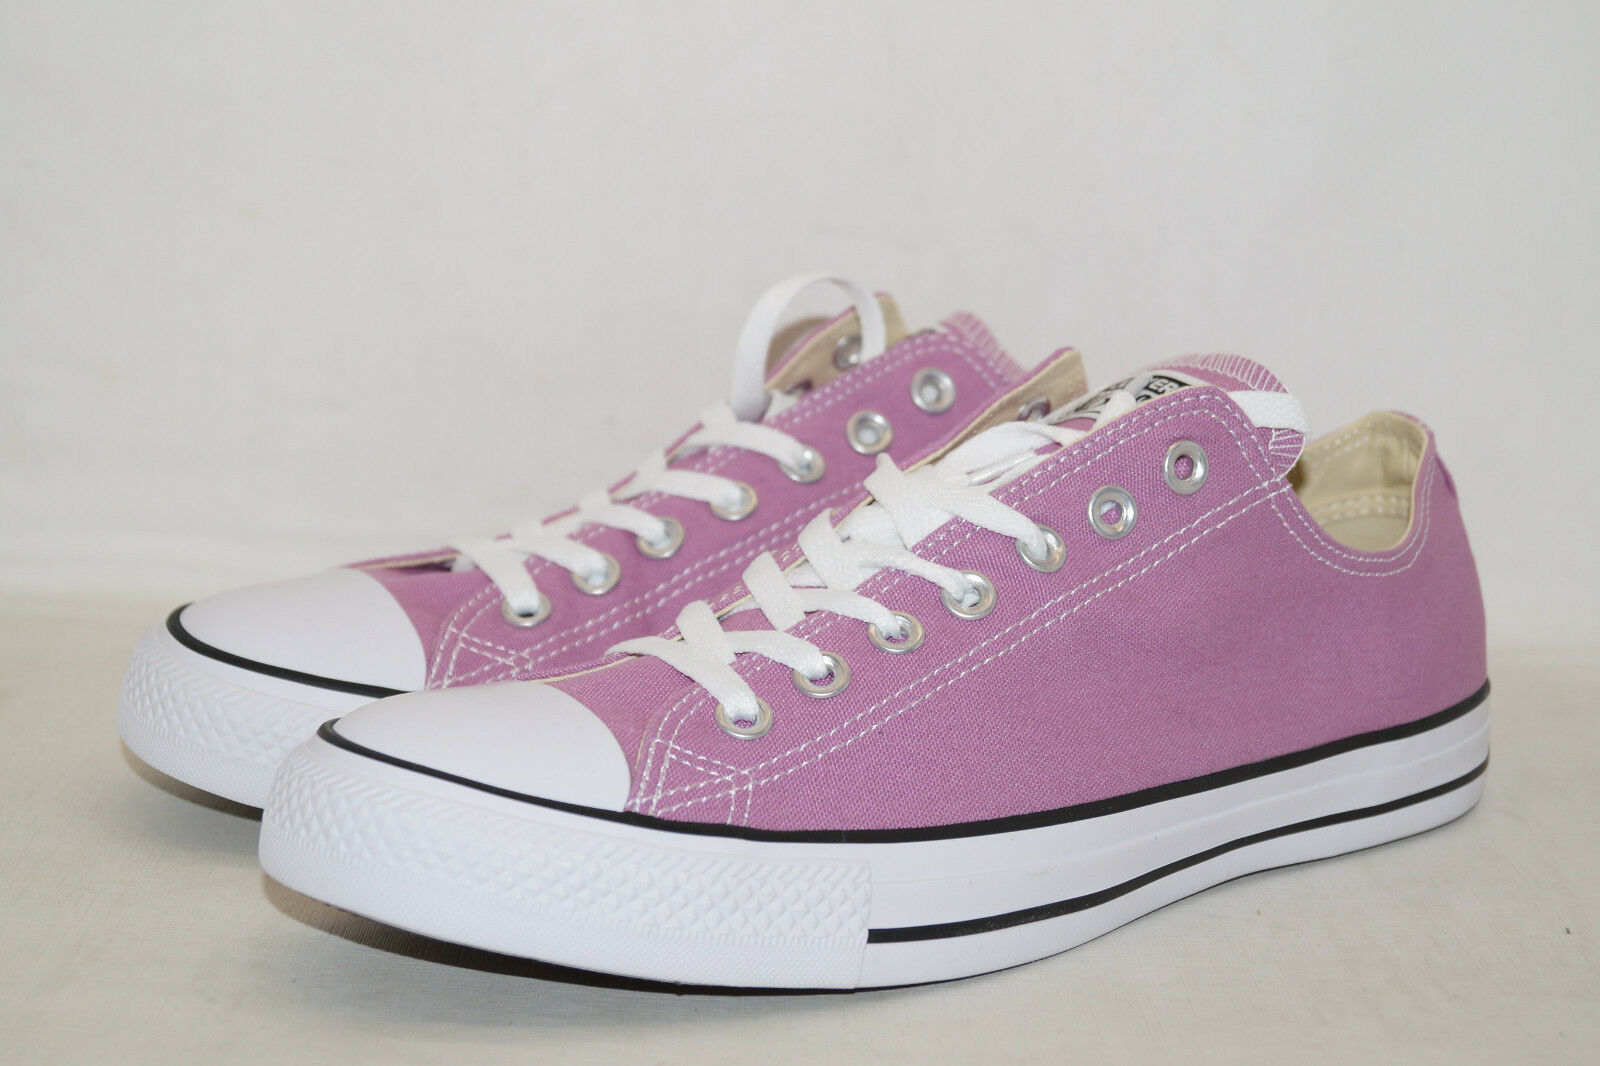 CONVERSE CHUCKS ALL STAR LOW CTAS OX Gr.44 UK.10 UK.10 UK.10 unisex 151182C Powder Purple 7d0712